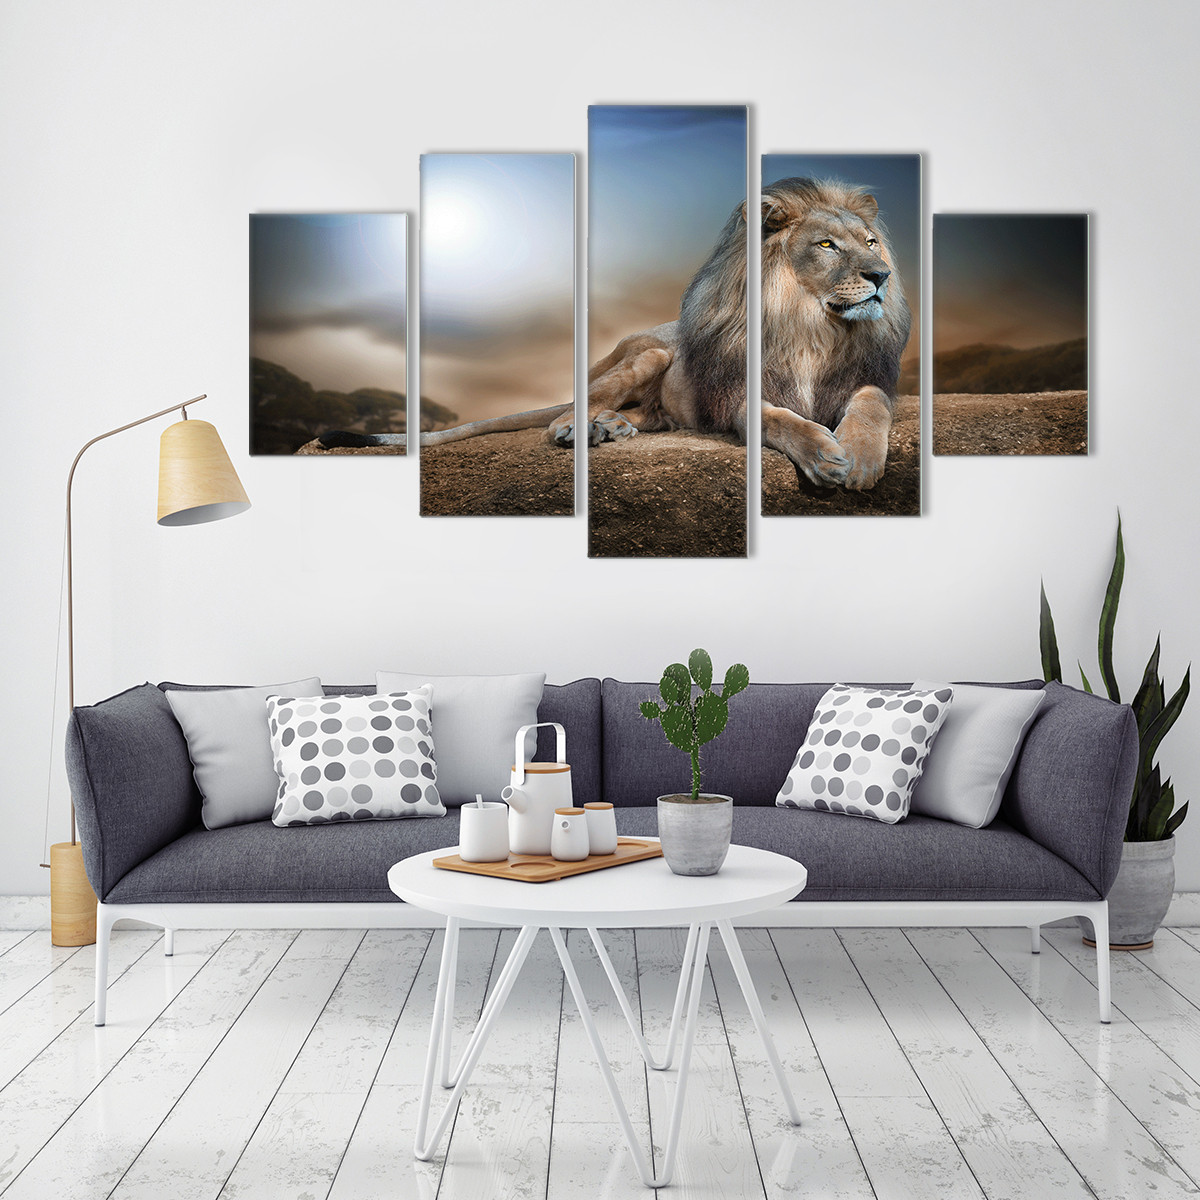 5 Panels HD Printed Male Lion Animal Wall Art Painting Canvas Print Room decor print poster